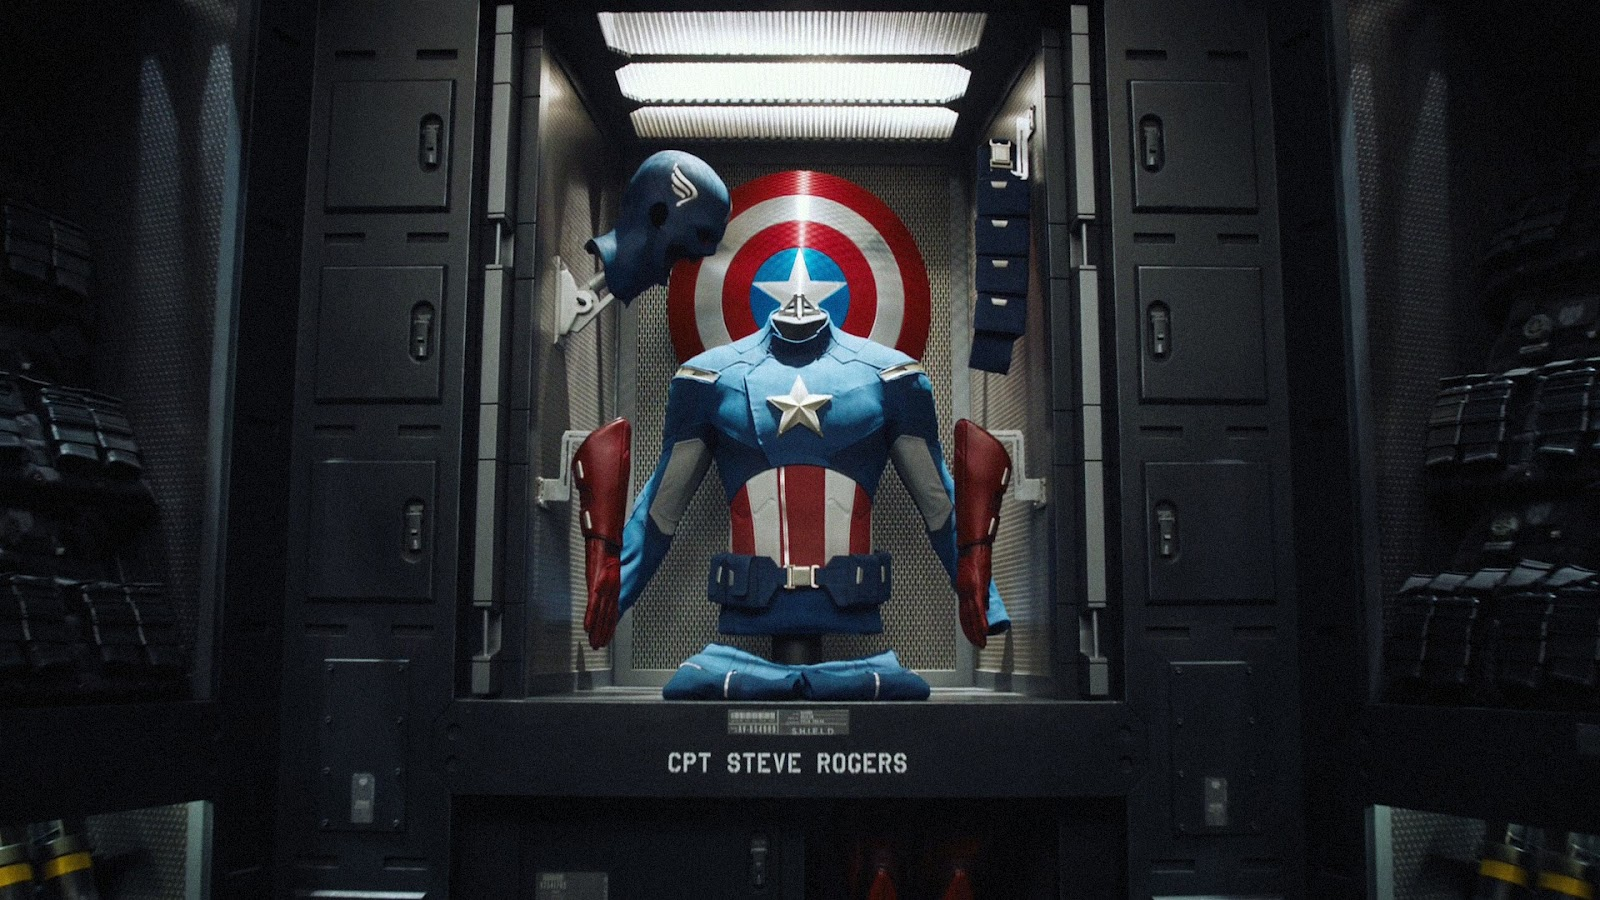 Captain America Costume and Shield The Avengers Movie HD Desktop 1600x900